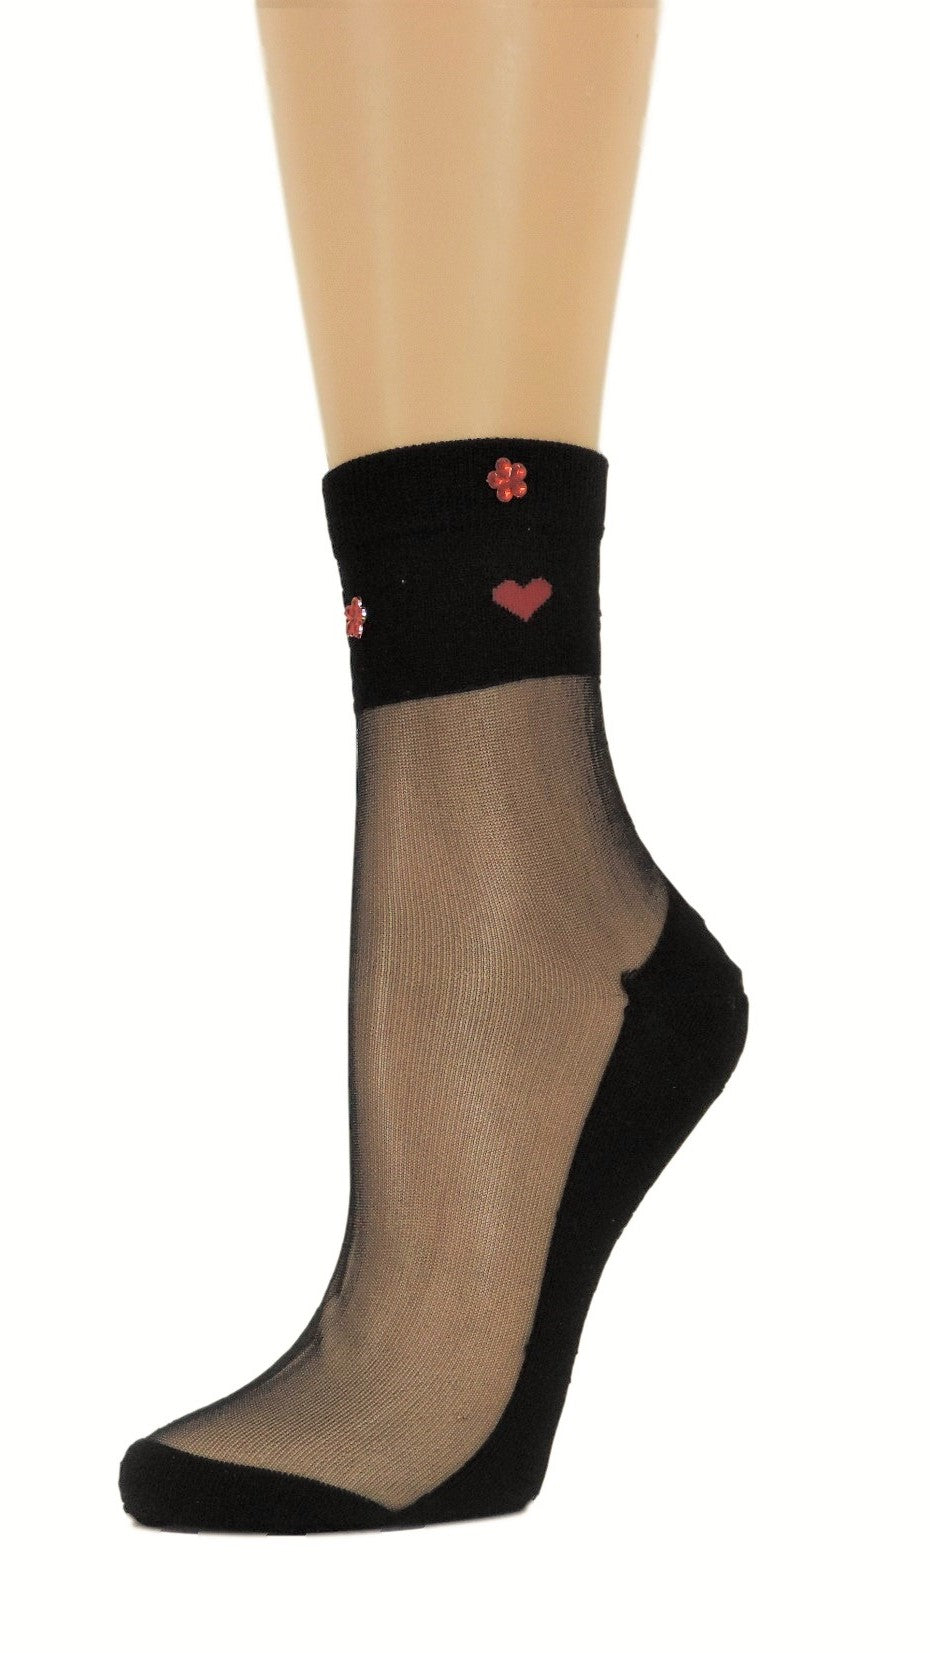 Young Heart Black Custom Sheer Socks with beads - Global Trendz Fashion®